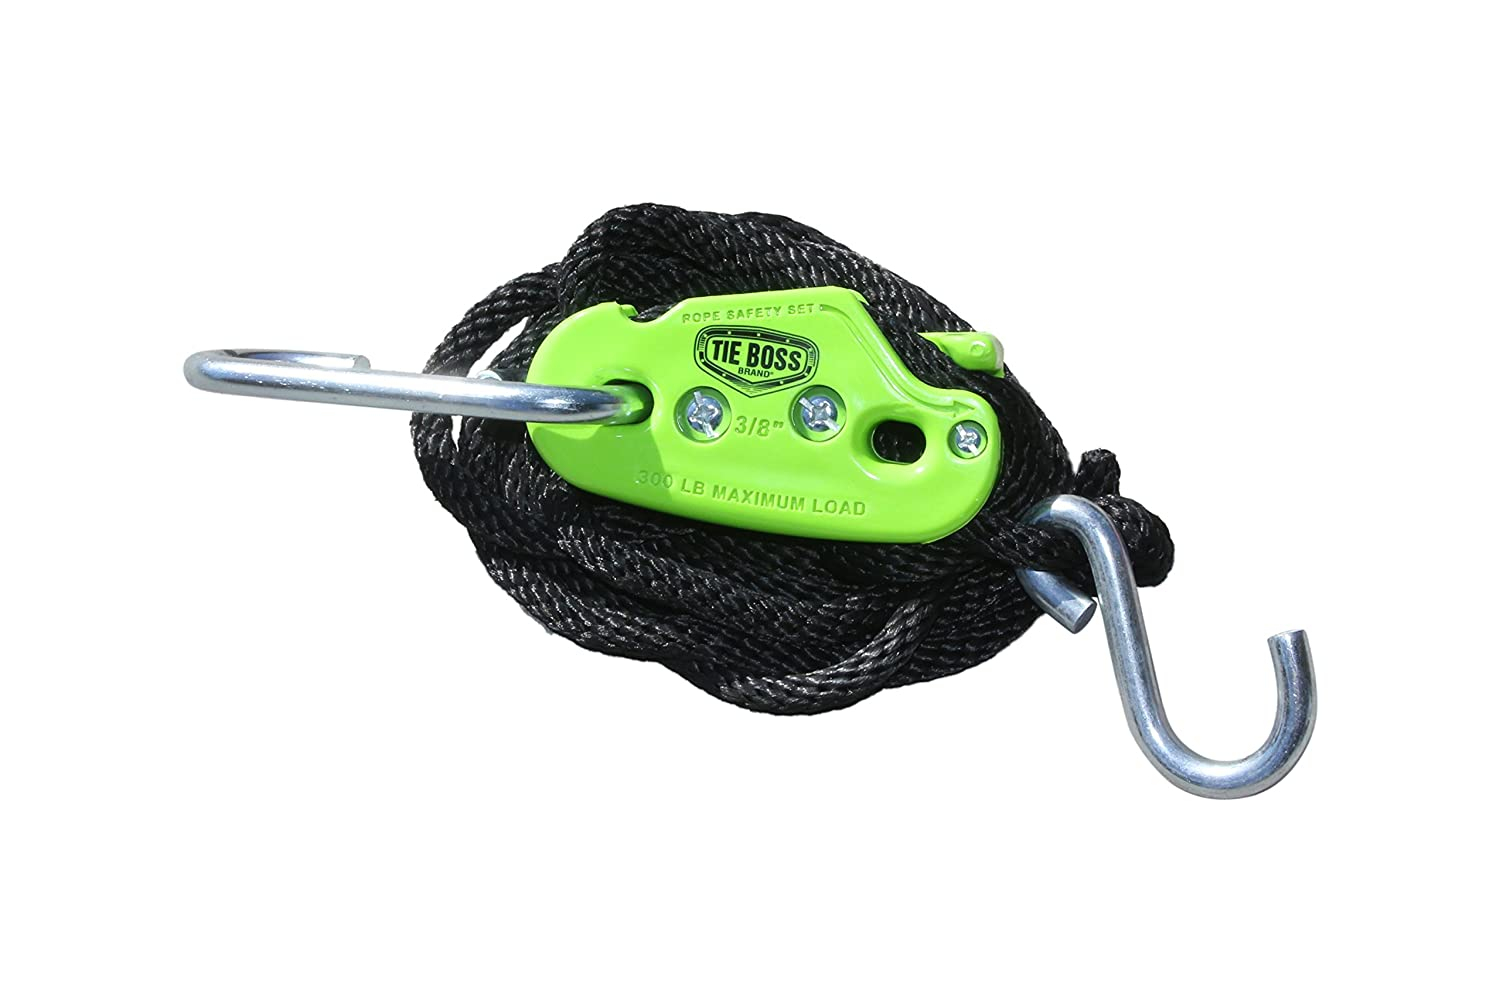 3//8-Inch Hydrofarm Inc Tie Boss Pulley Lighting Accessories with 10-Feet Rope TB380210